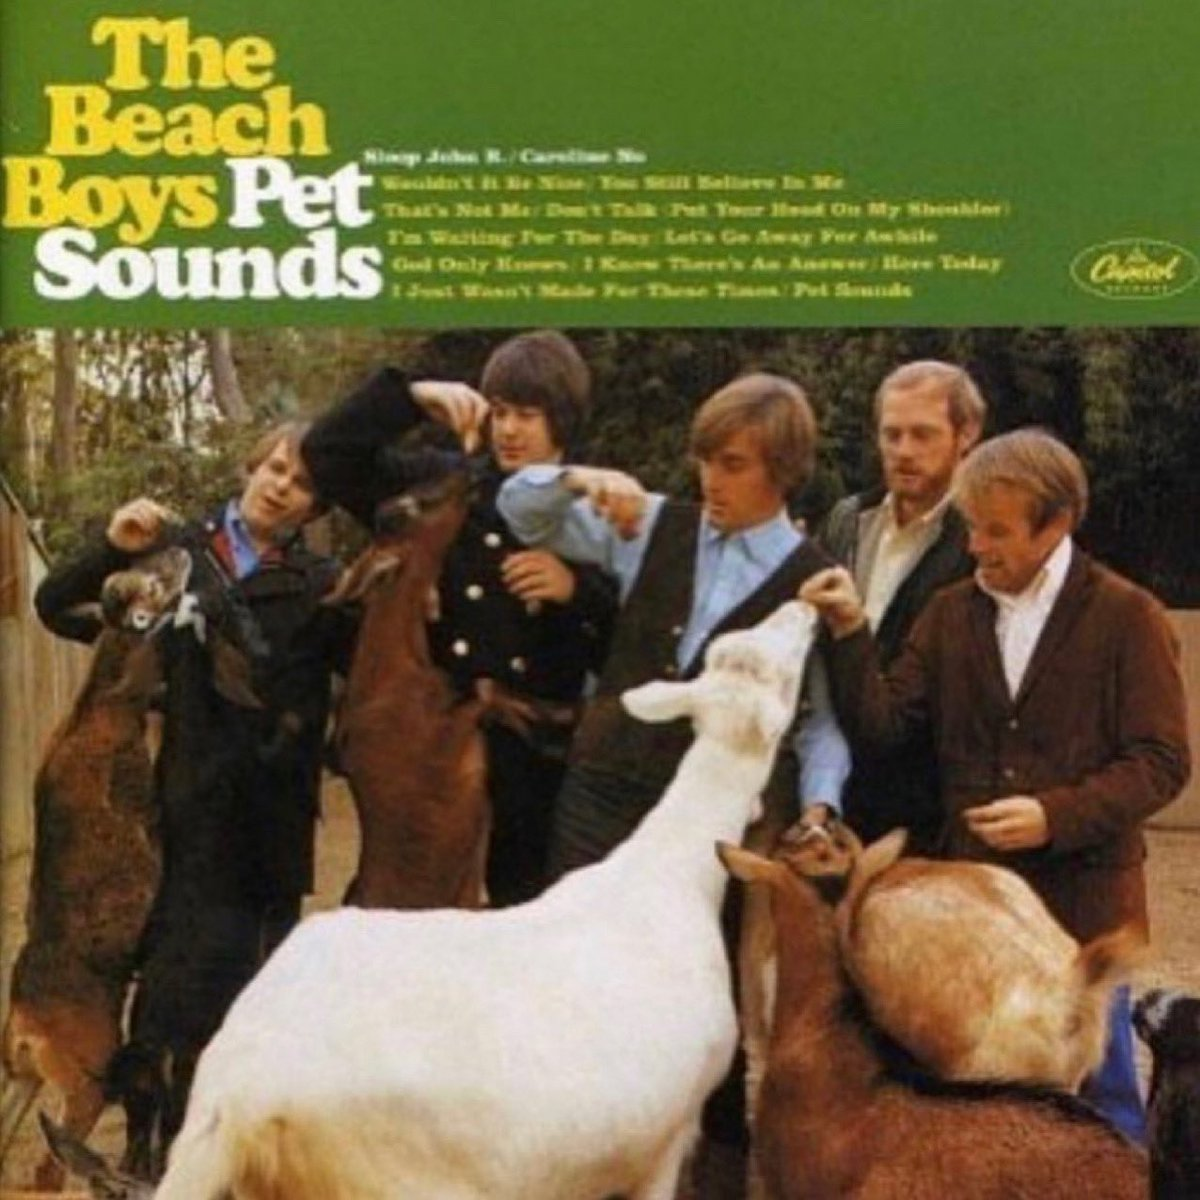 Released on this day in 1966, 'Pet Sounds' is the 11th album by the #BeachBoys. In 2004 it was preserved in the National Recording Registry by the Library of Congress for being